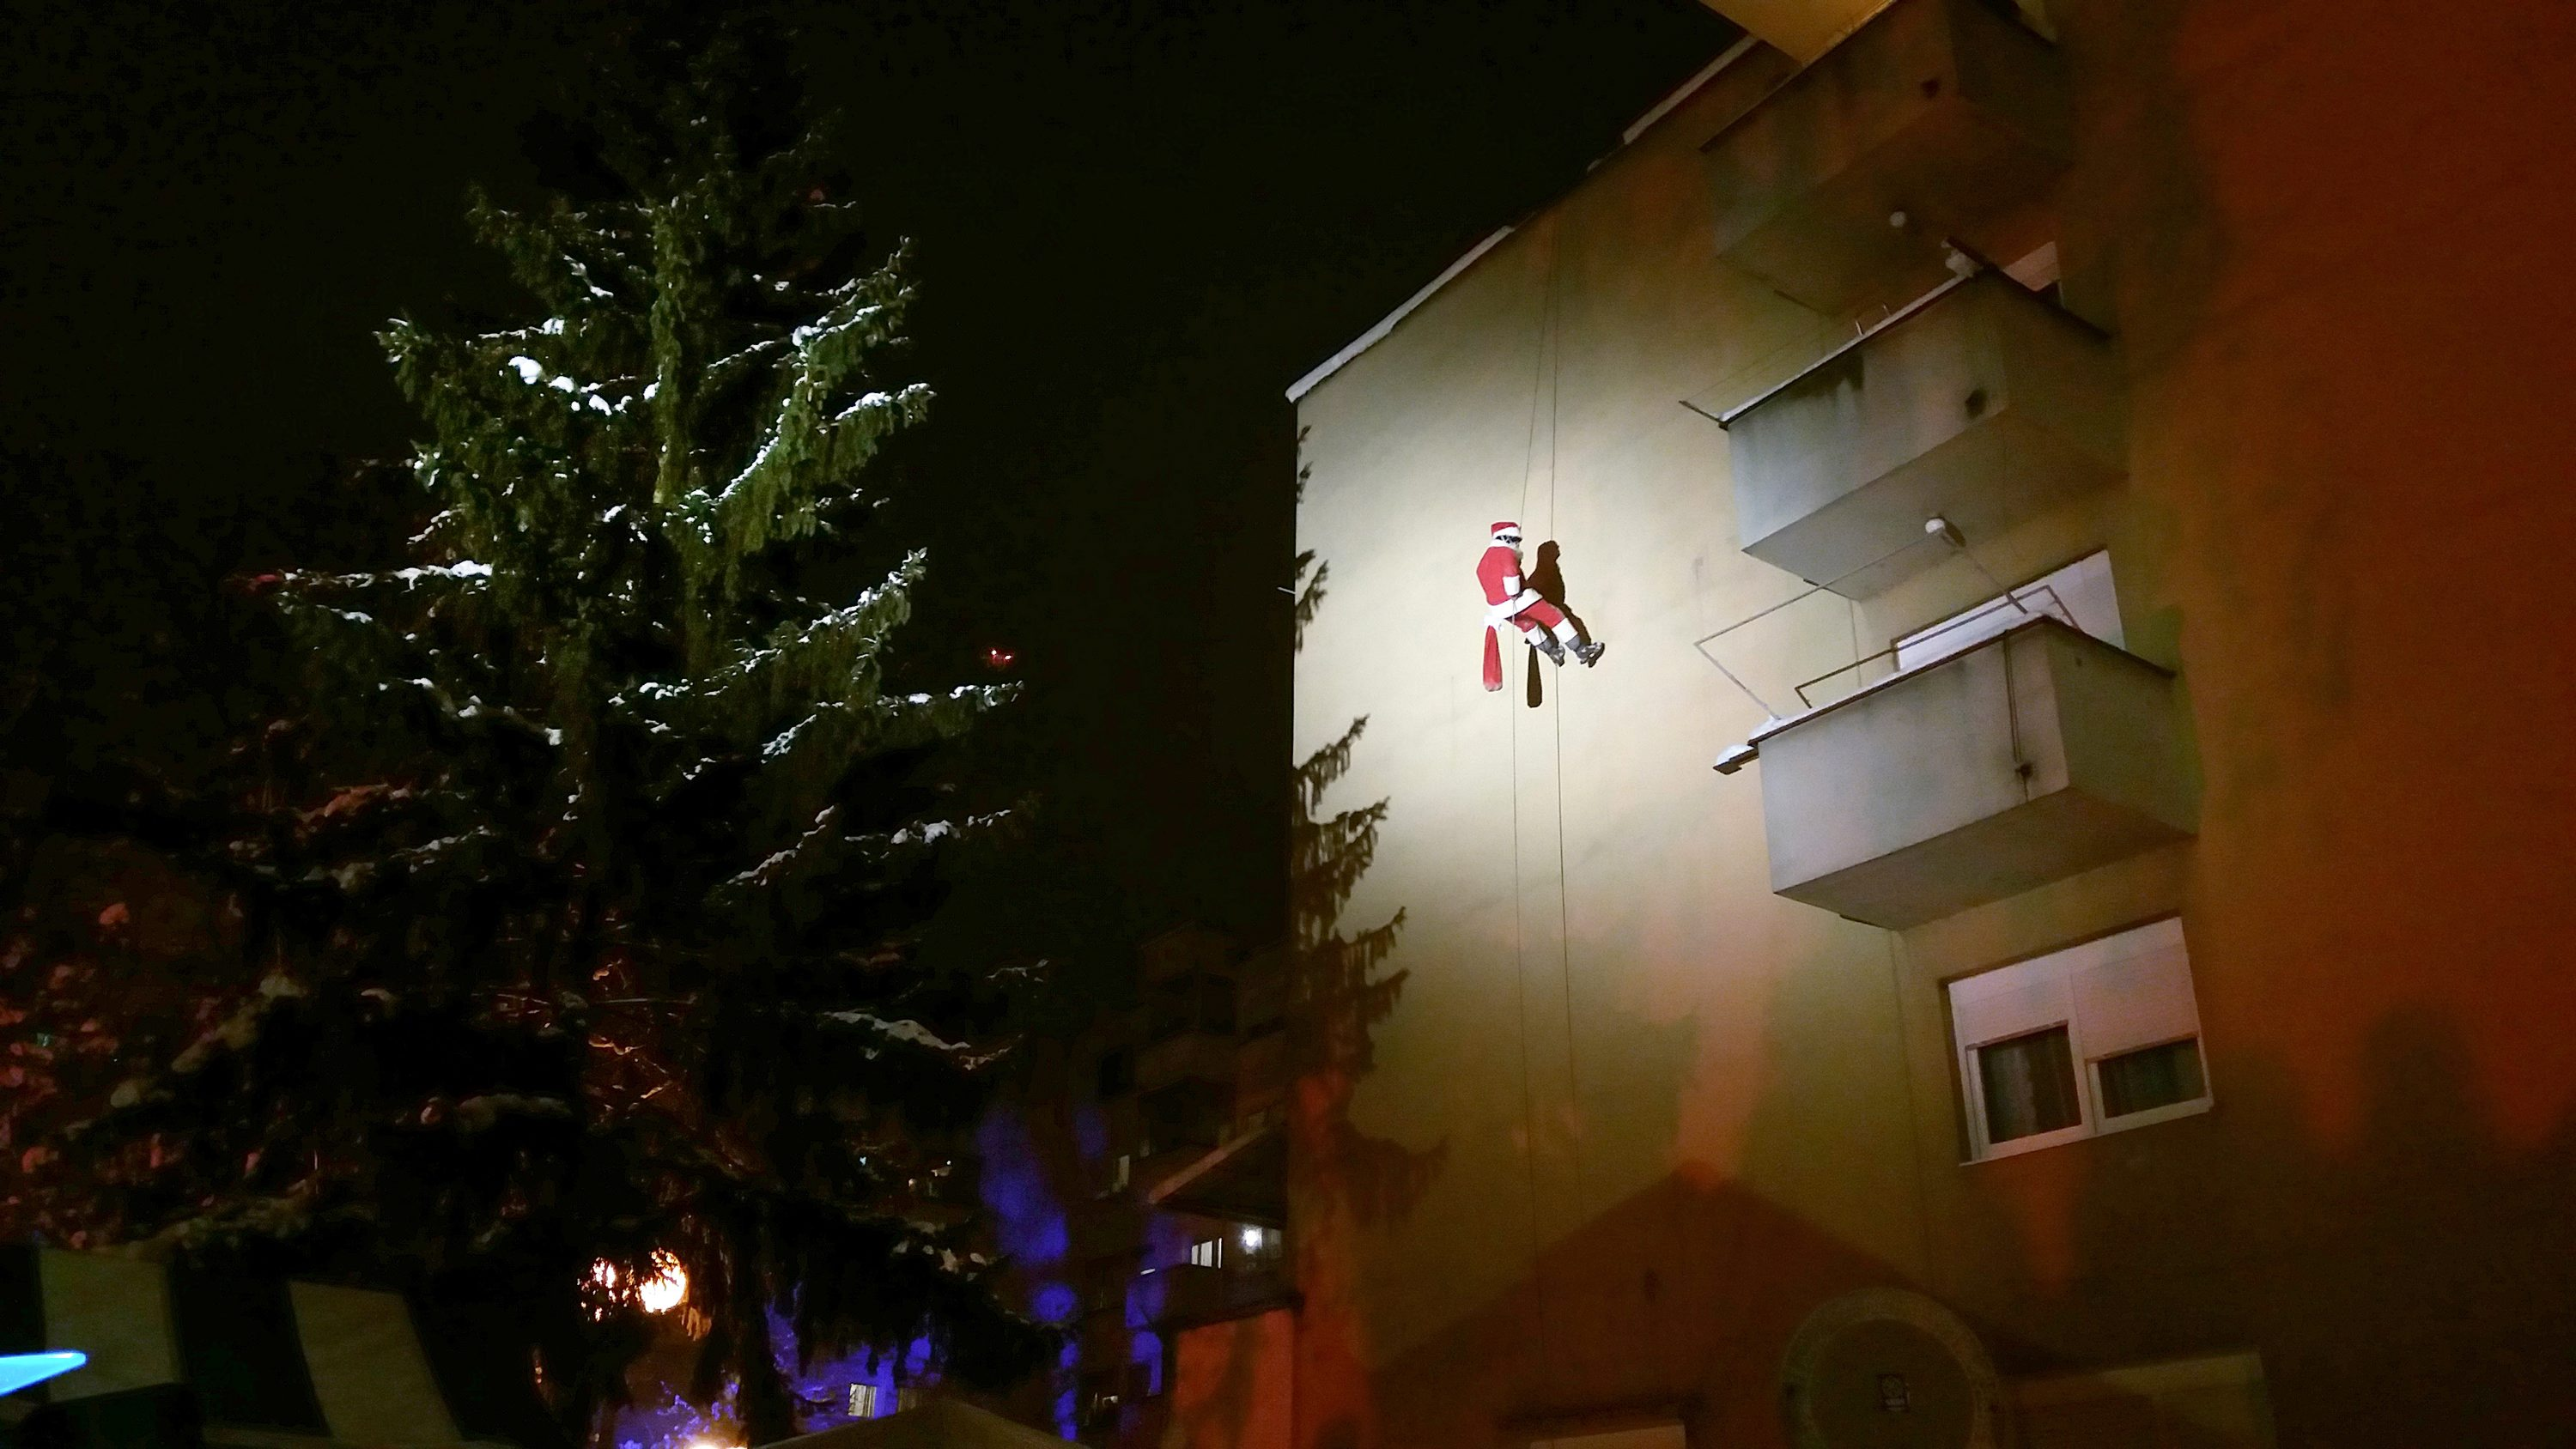 Santa climbing down a house in Lutvinka